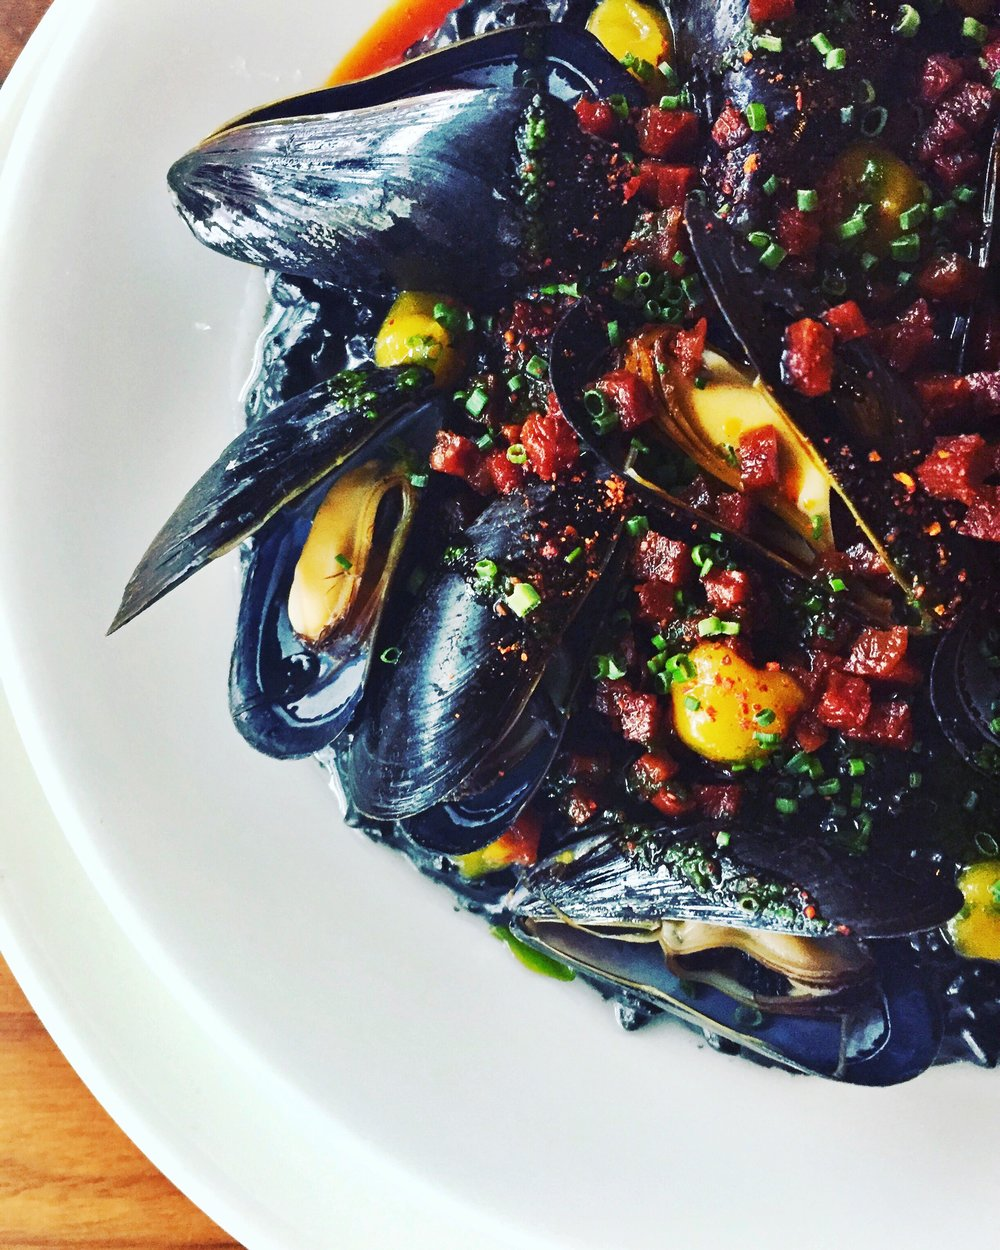 Squid Ink Risotto, Mussels, Chorizo, Meyer Lemon Confiture